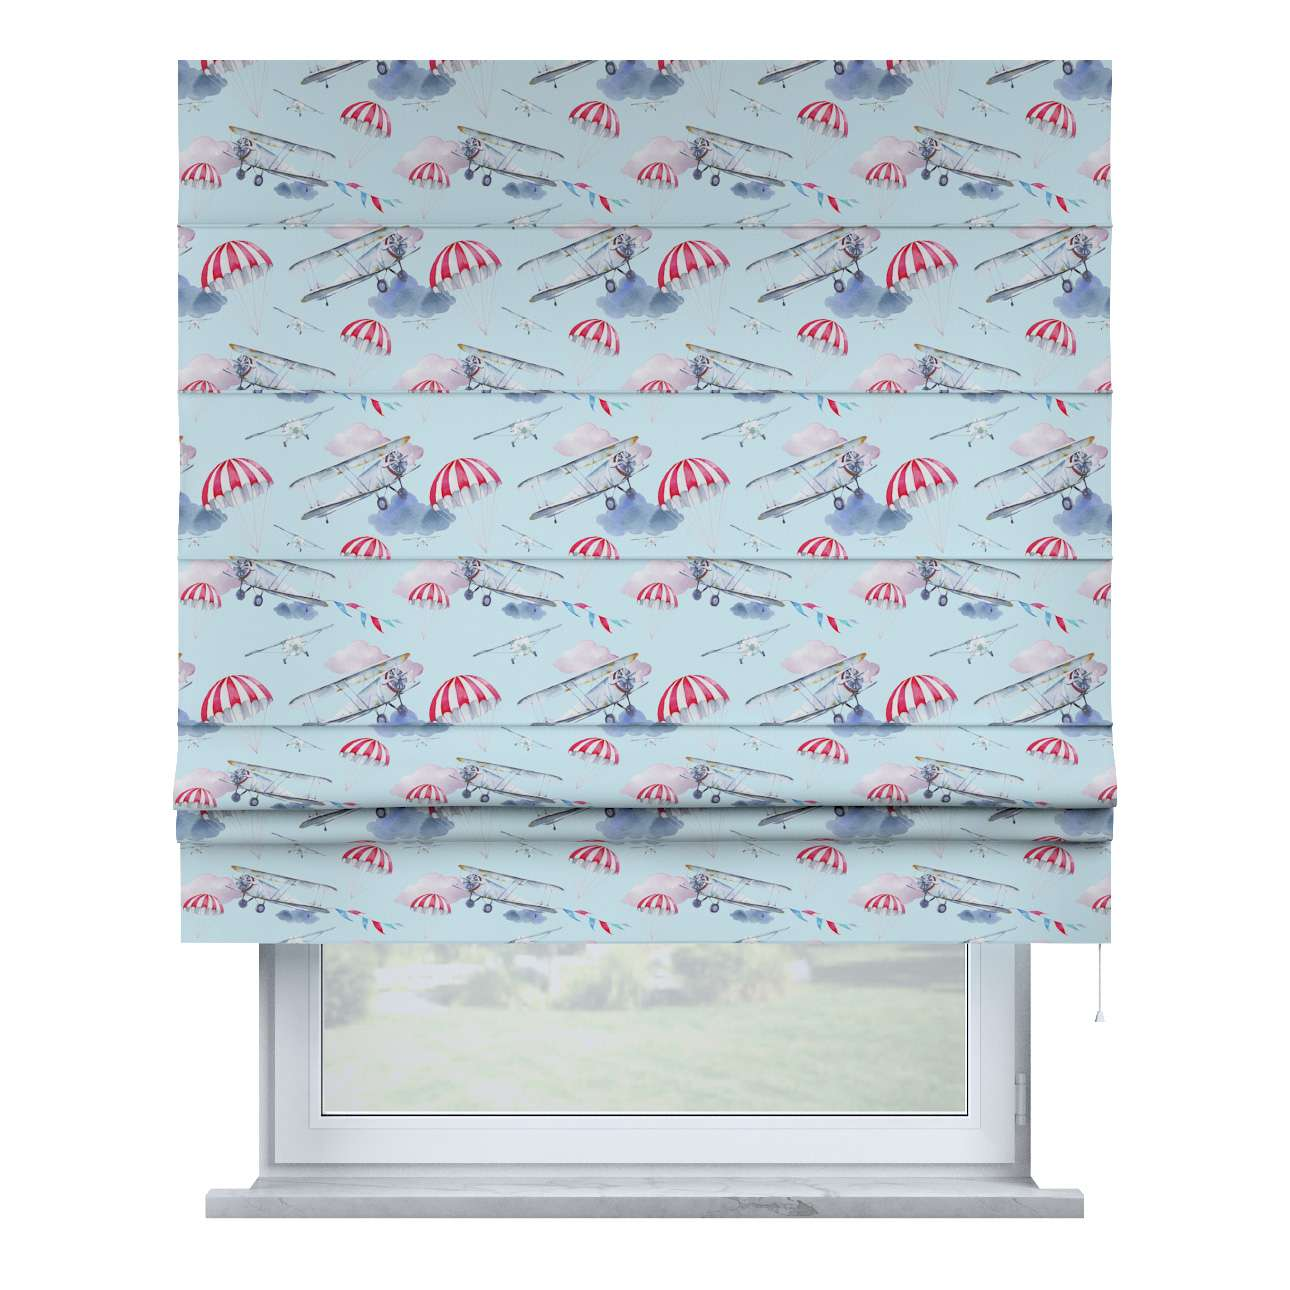 Sammy roman blind in collection Magic Collection, fabric: 500-10